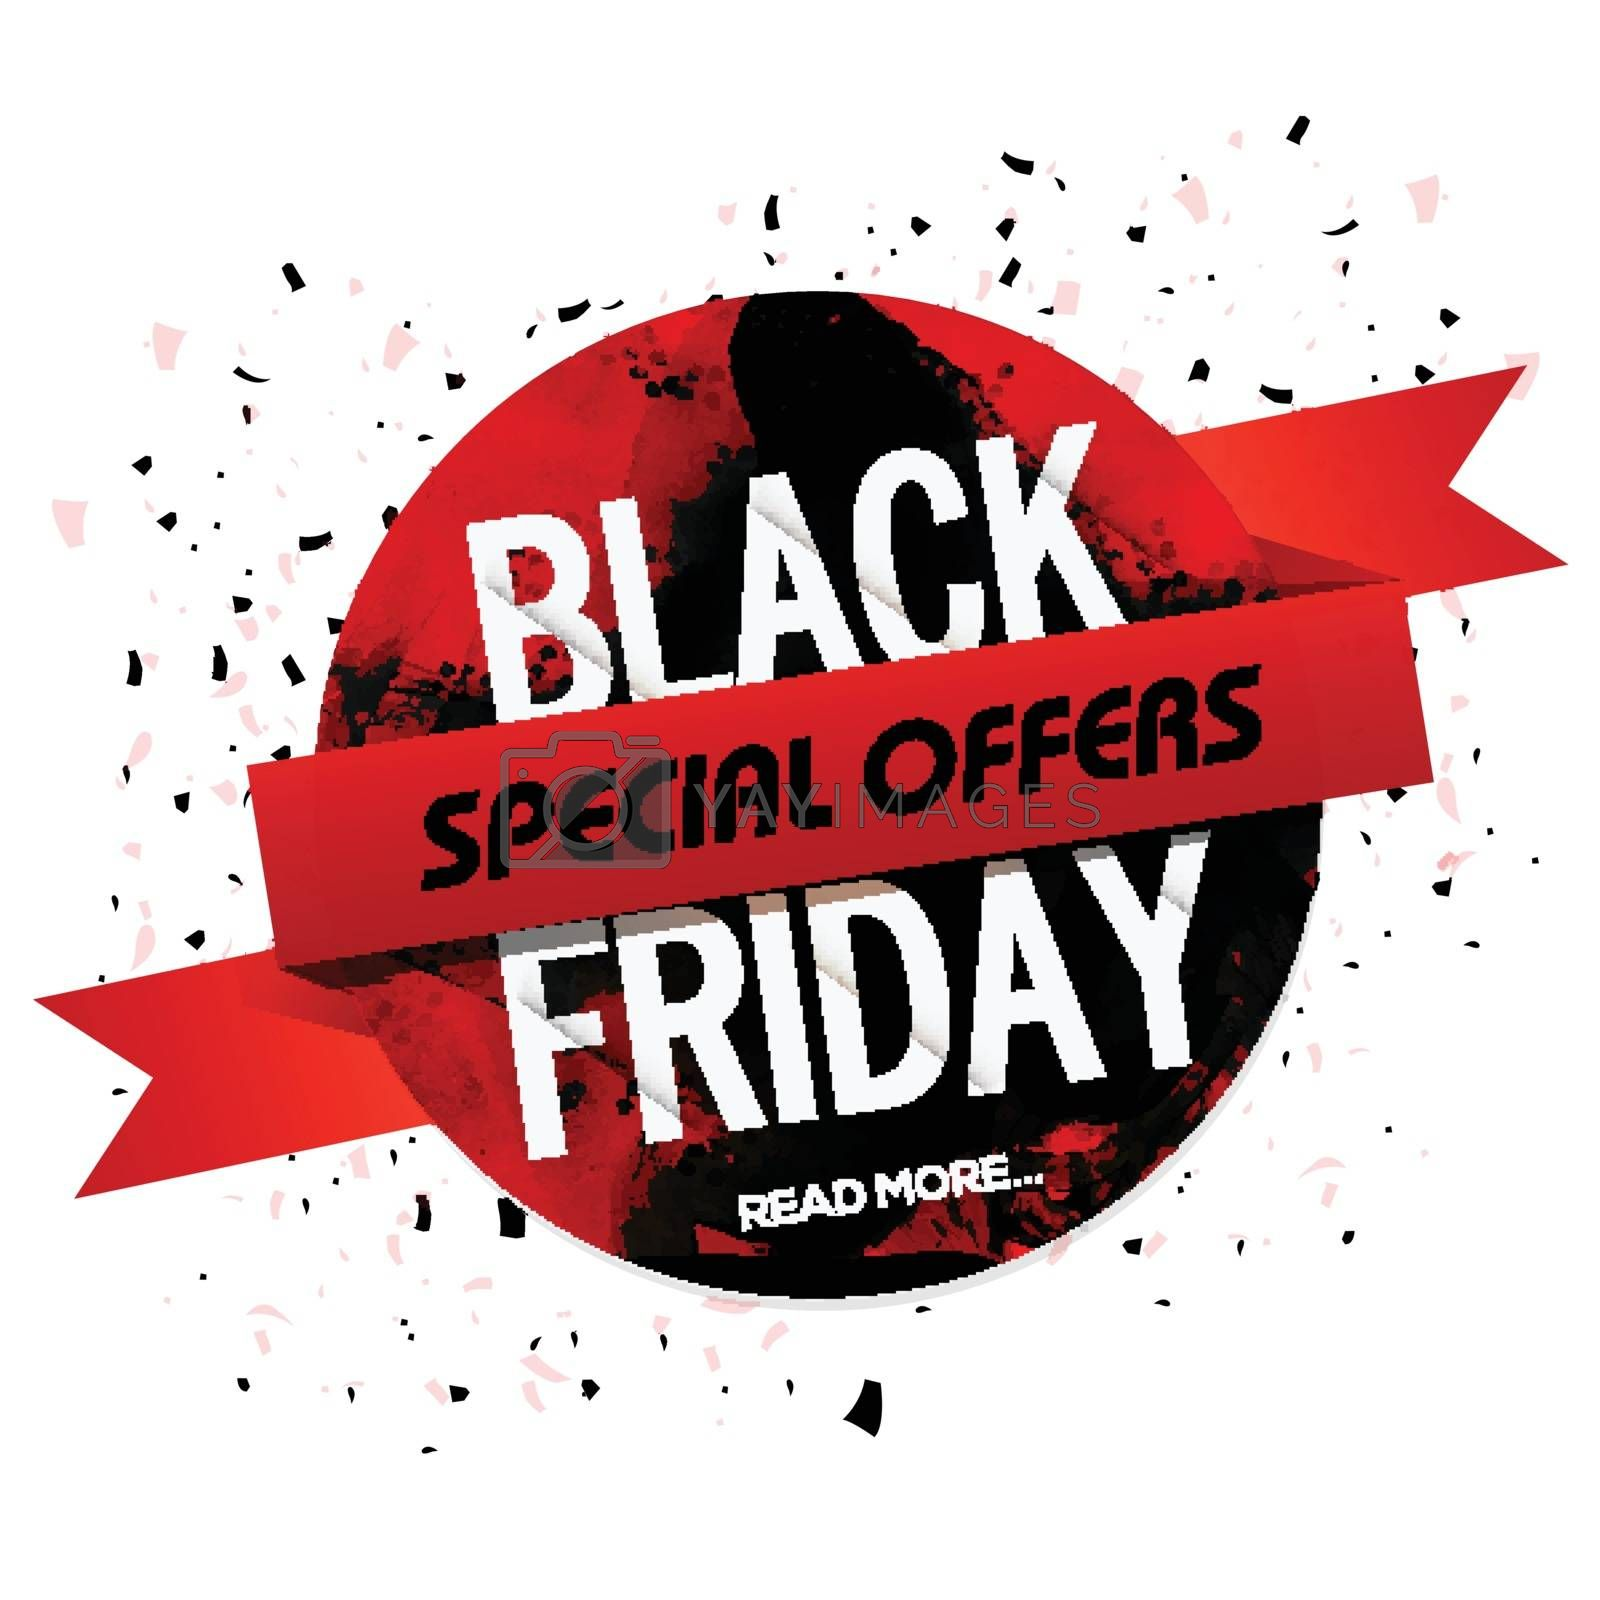 Black Friday Special Offers, Sticker, Label, Tag with glossy ribbon, Useable for Poster, Banner, Flyer or Pamphlet design.